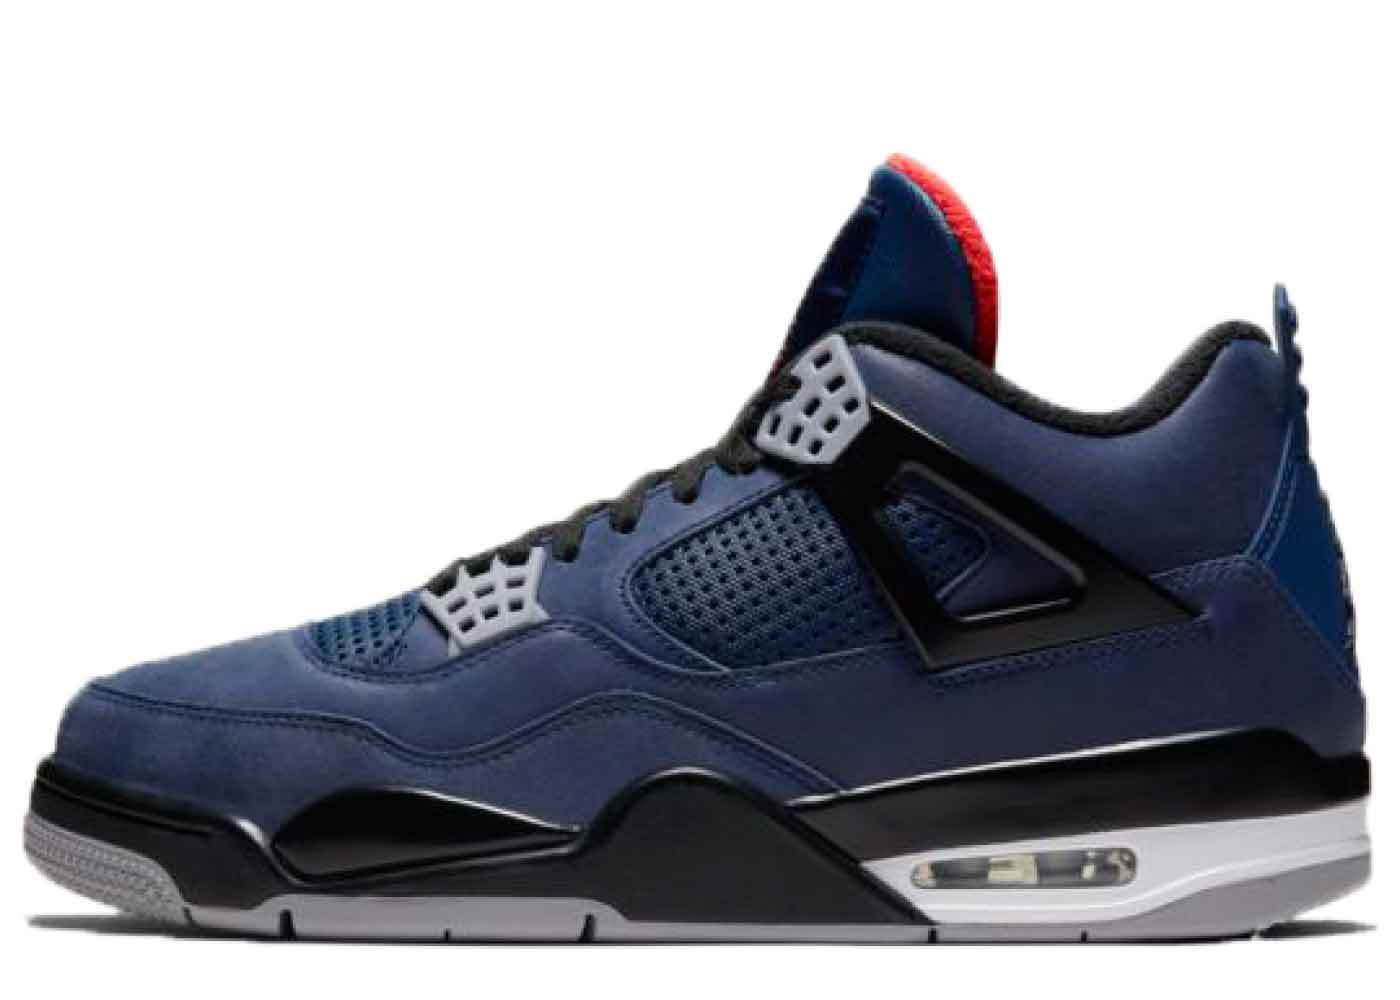 Nike Air Jordan 4 Retro Winterized Loyal Blueの写真